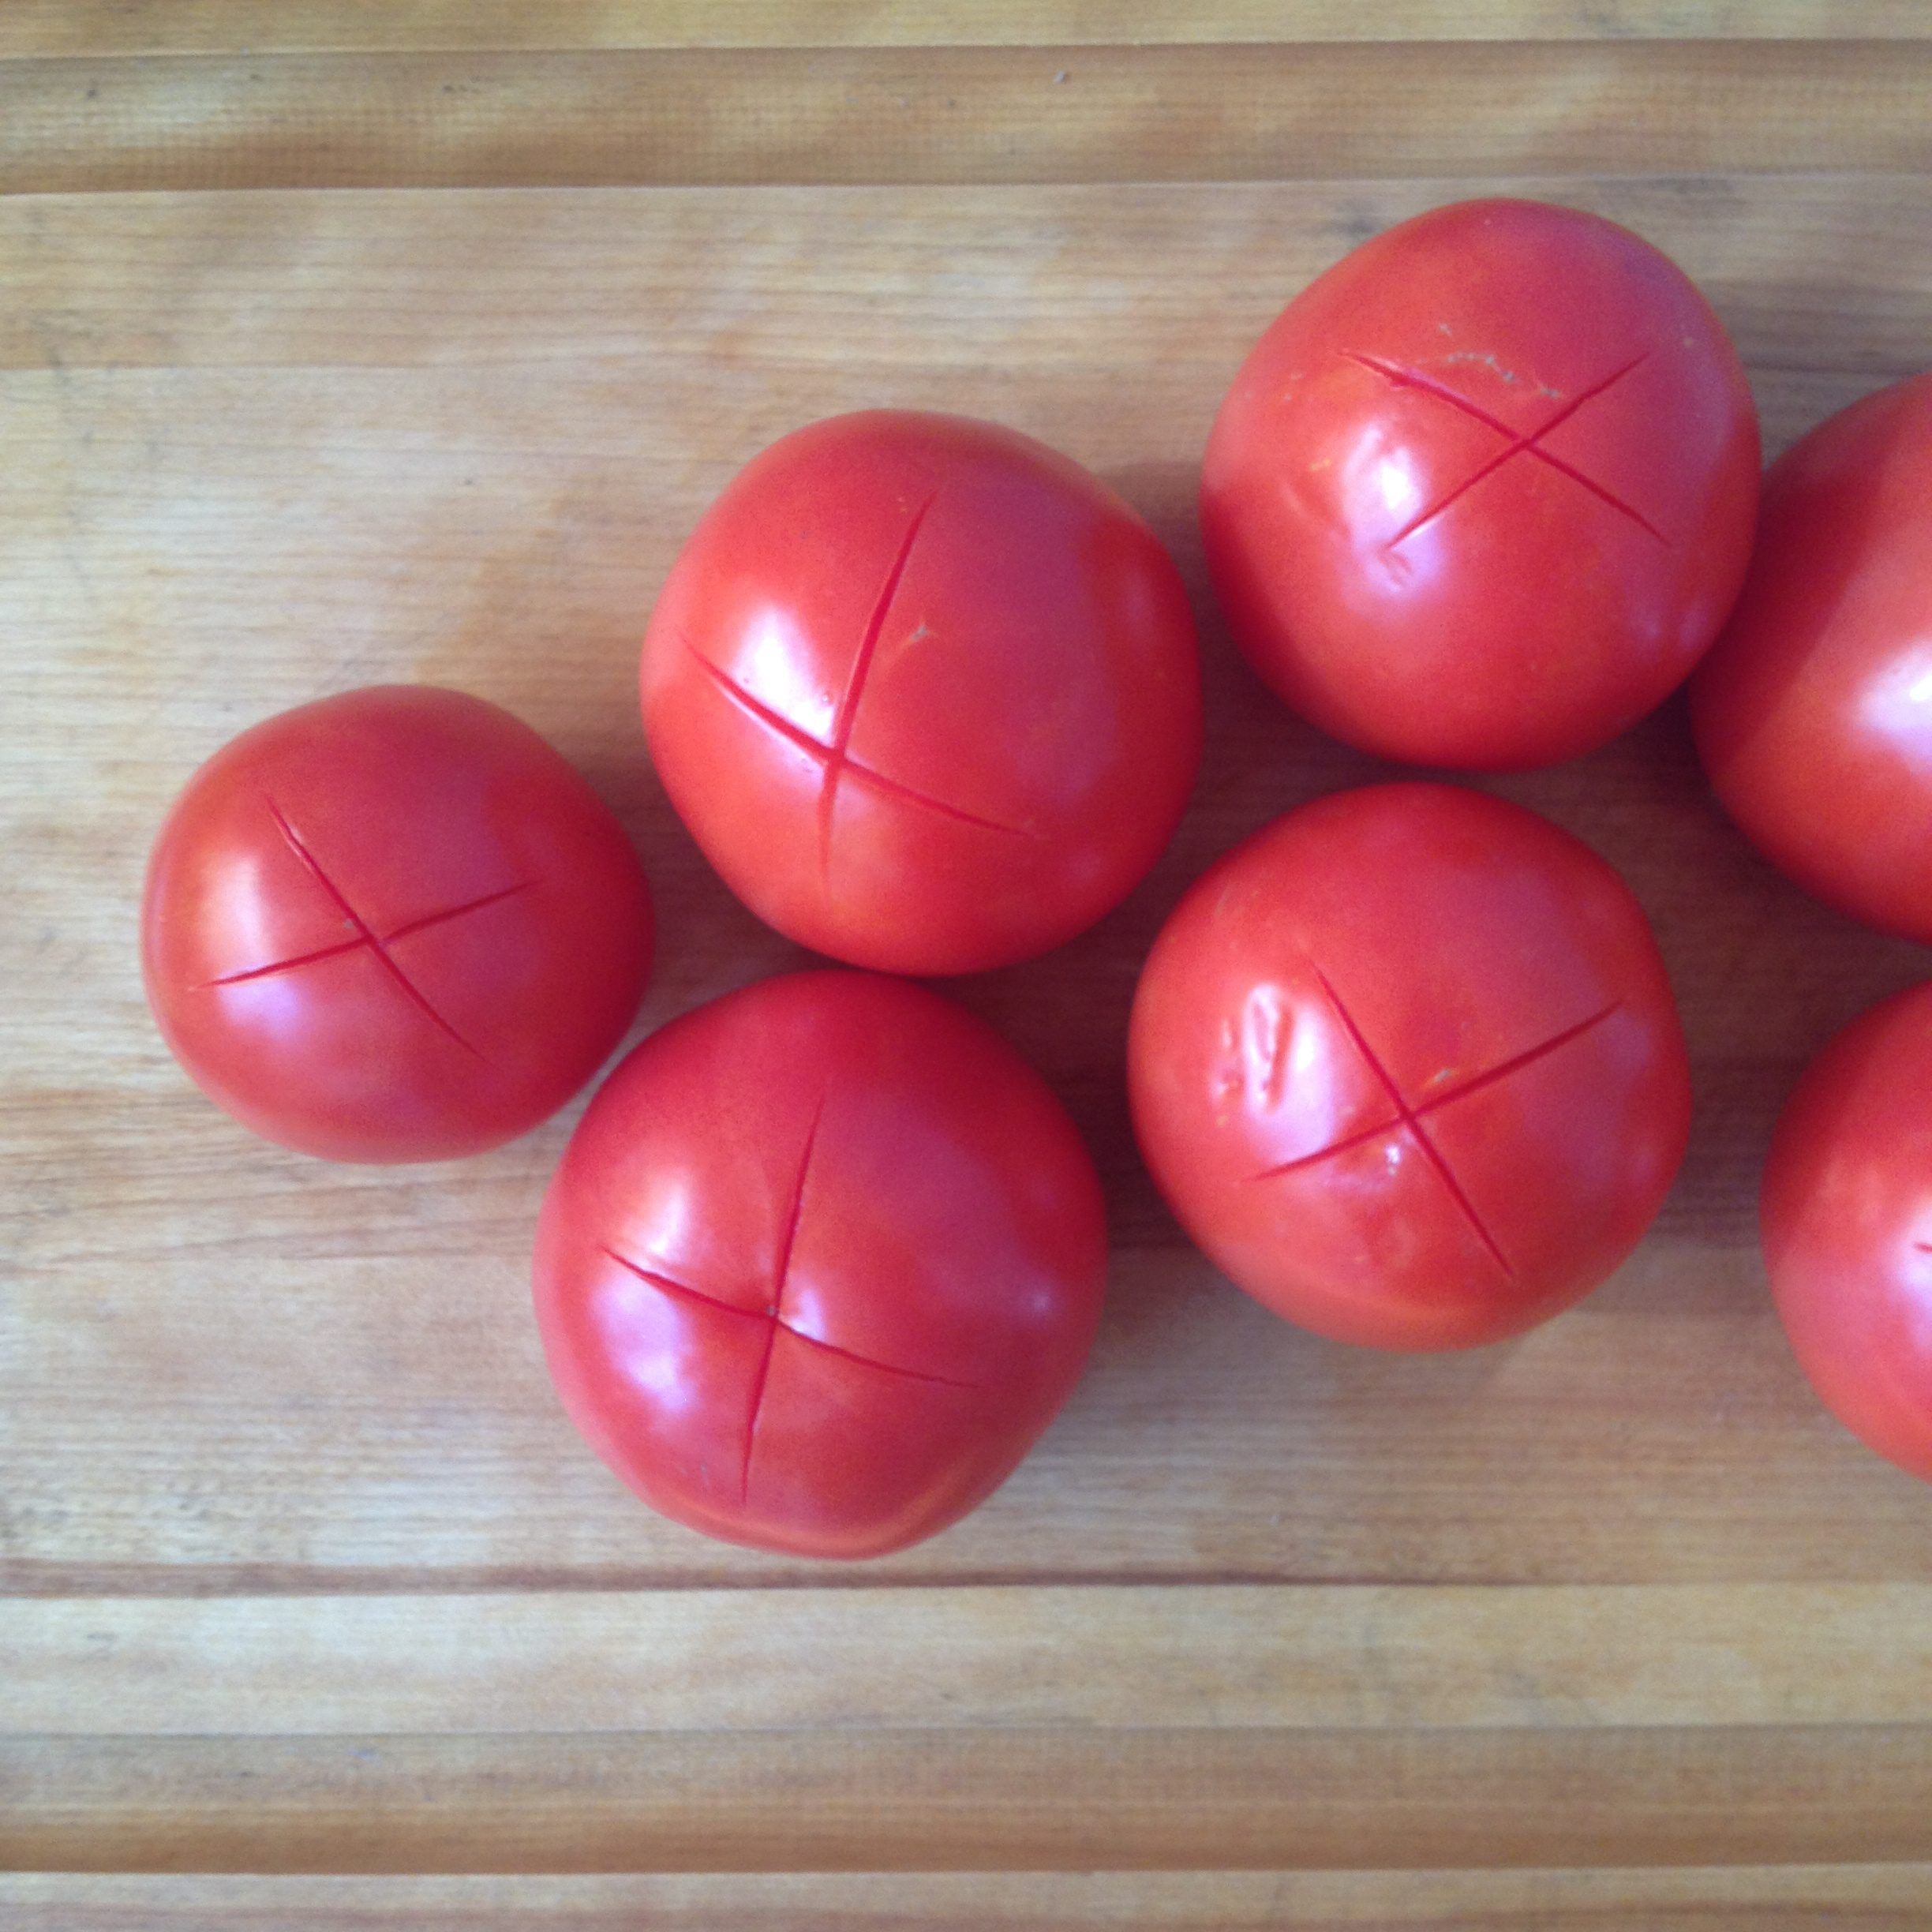 Cut crosses in bottom of Tomatoes